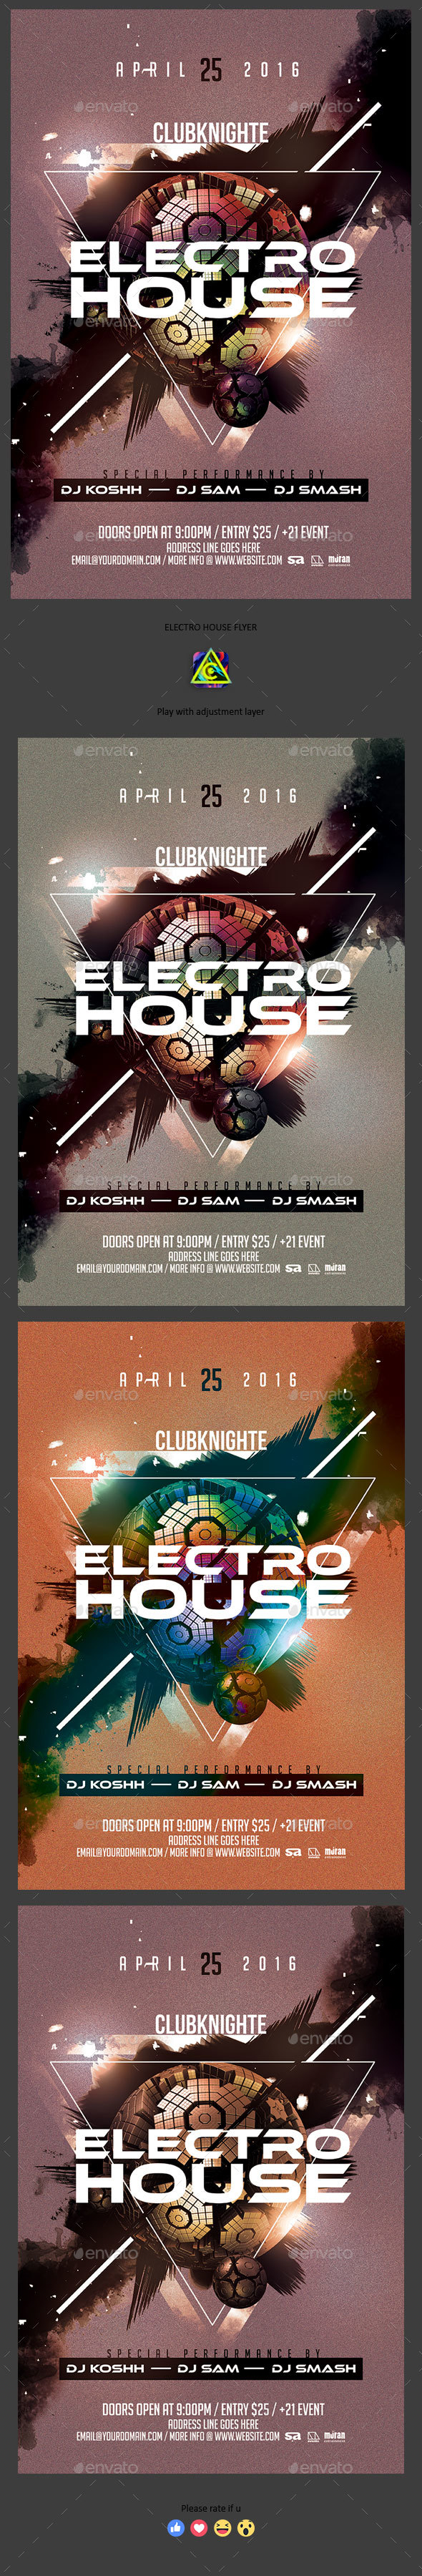 Electro House Flyer - Clubs & Parties Events